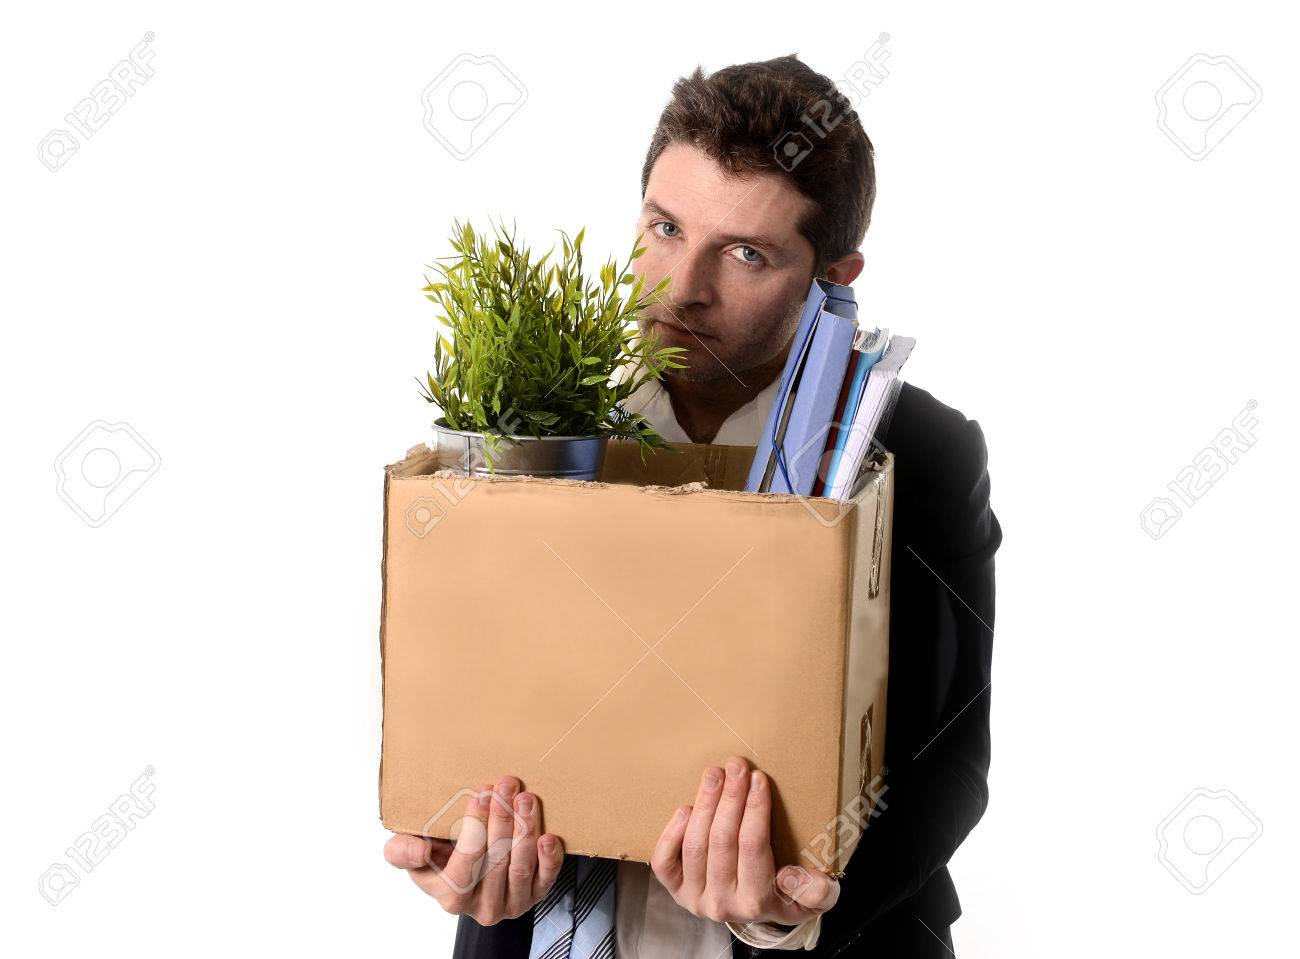 Jobless Young Business Man With Cardboard Box Fired From Job ...